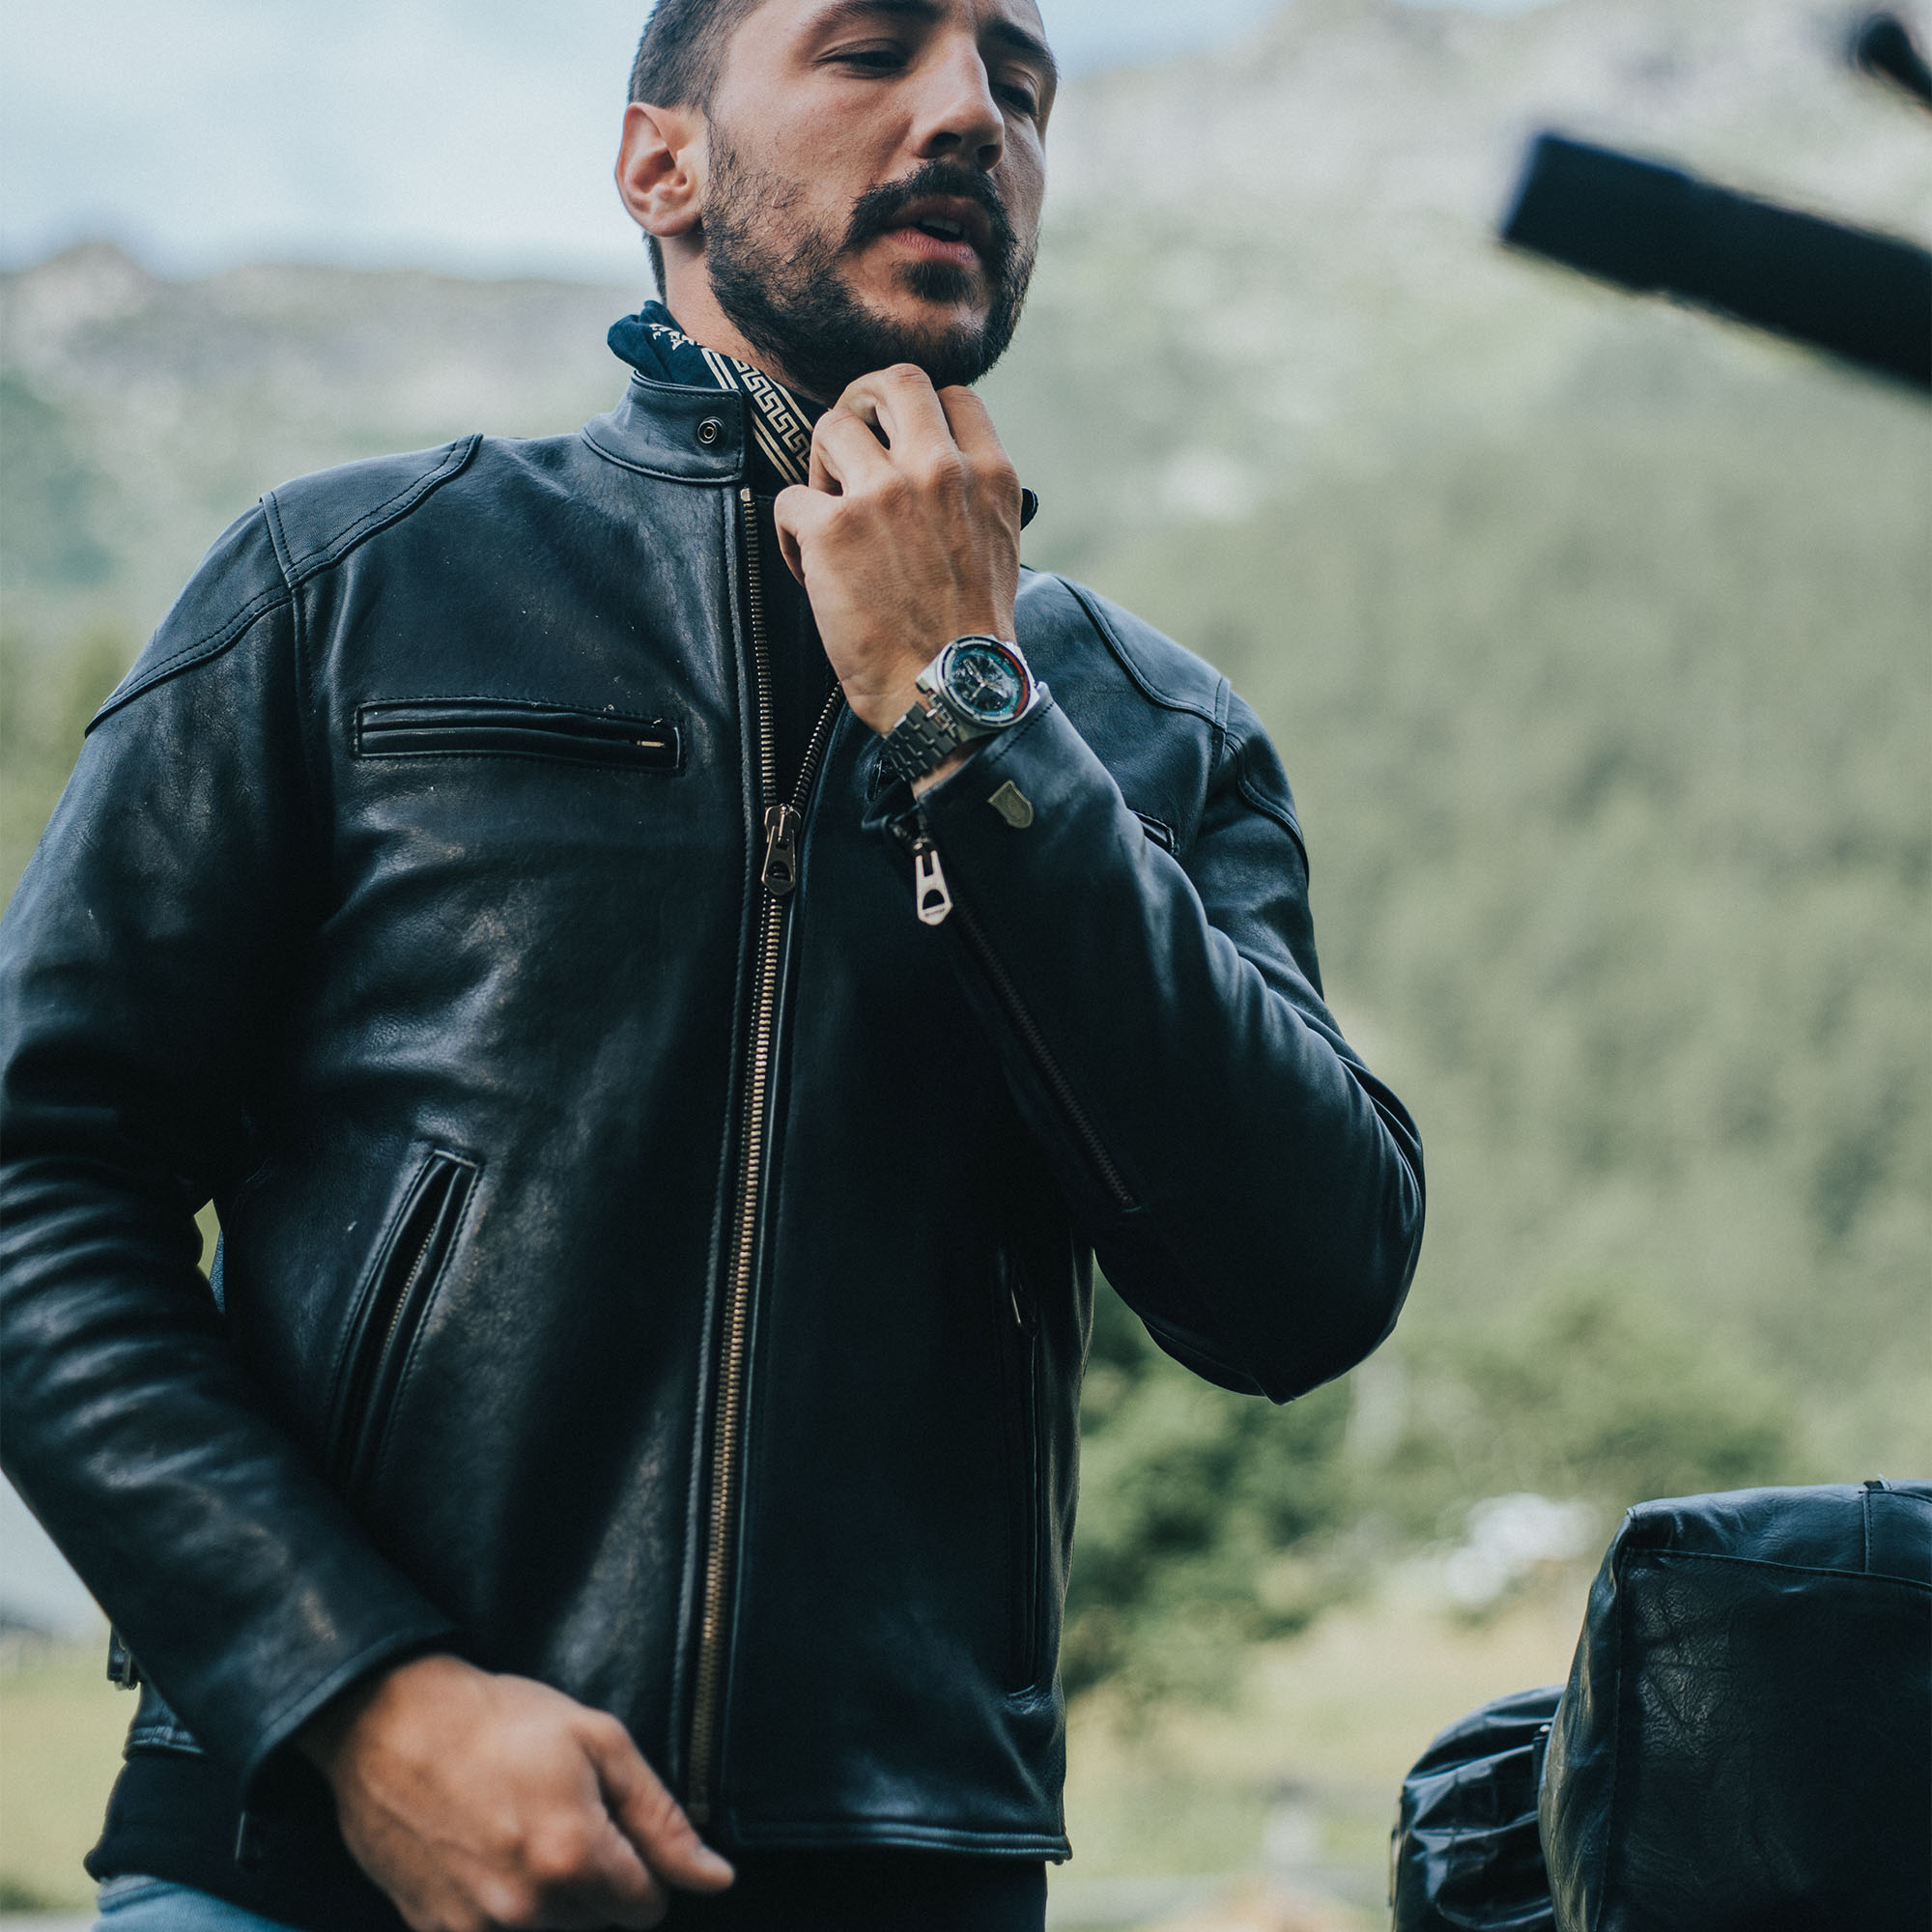 shangri-la-heritage-cafe-racer-black-lambskin-leather-jacket-lifestyle-1